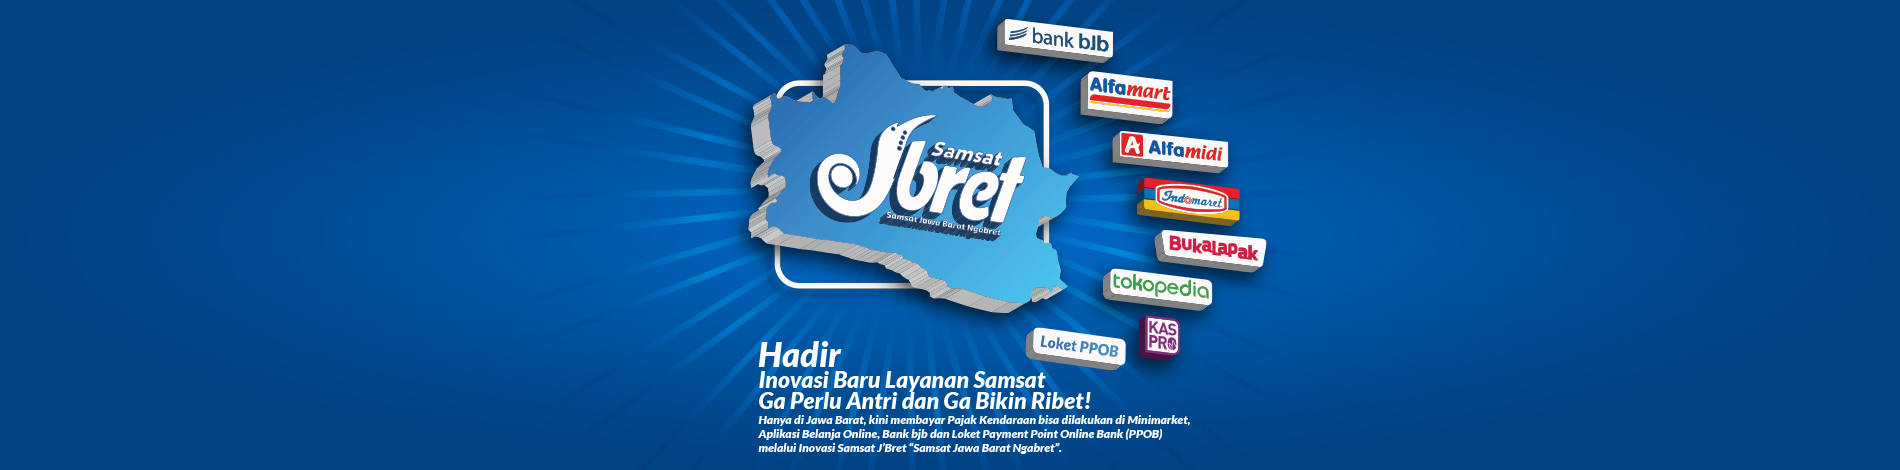 Banner Samsat Jbret Website